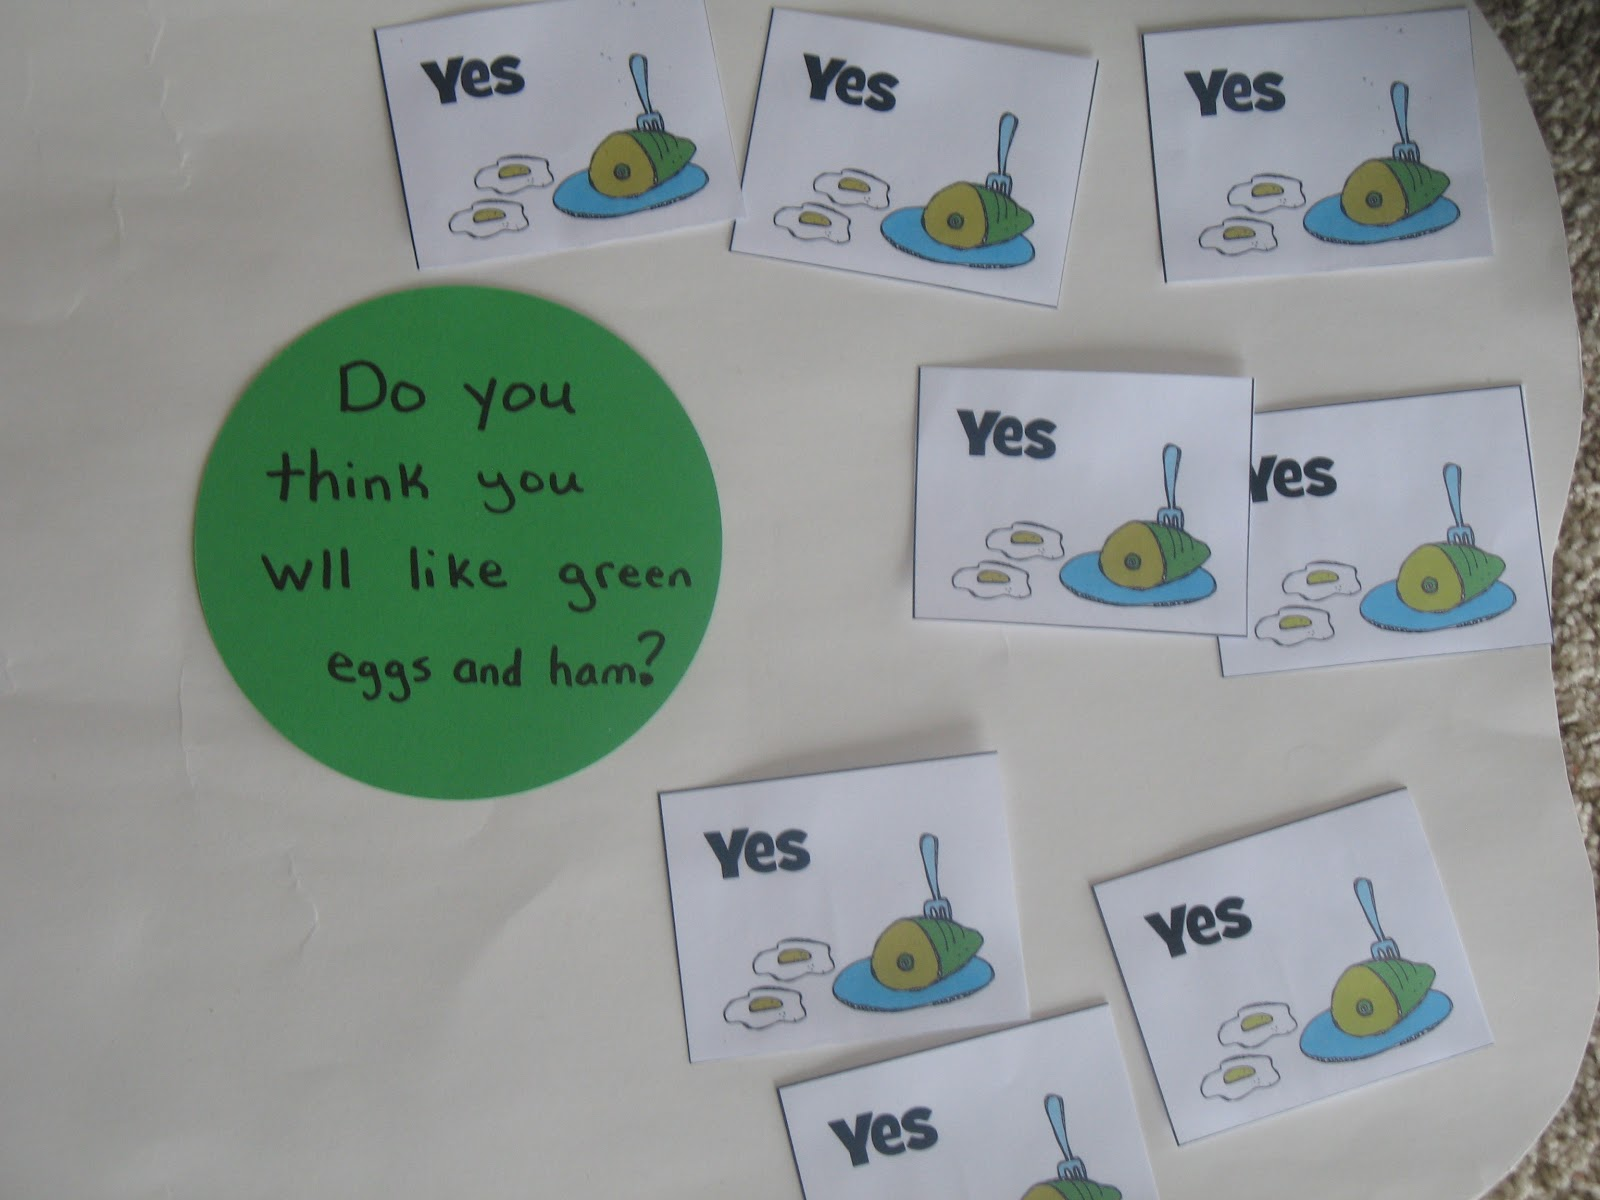 Tracy Made A Green Eggs And Ham Chart Amazingly Almost Everyone Thought They Would Like